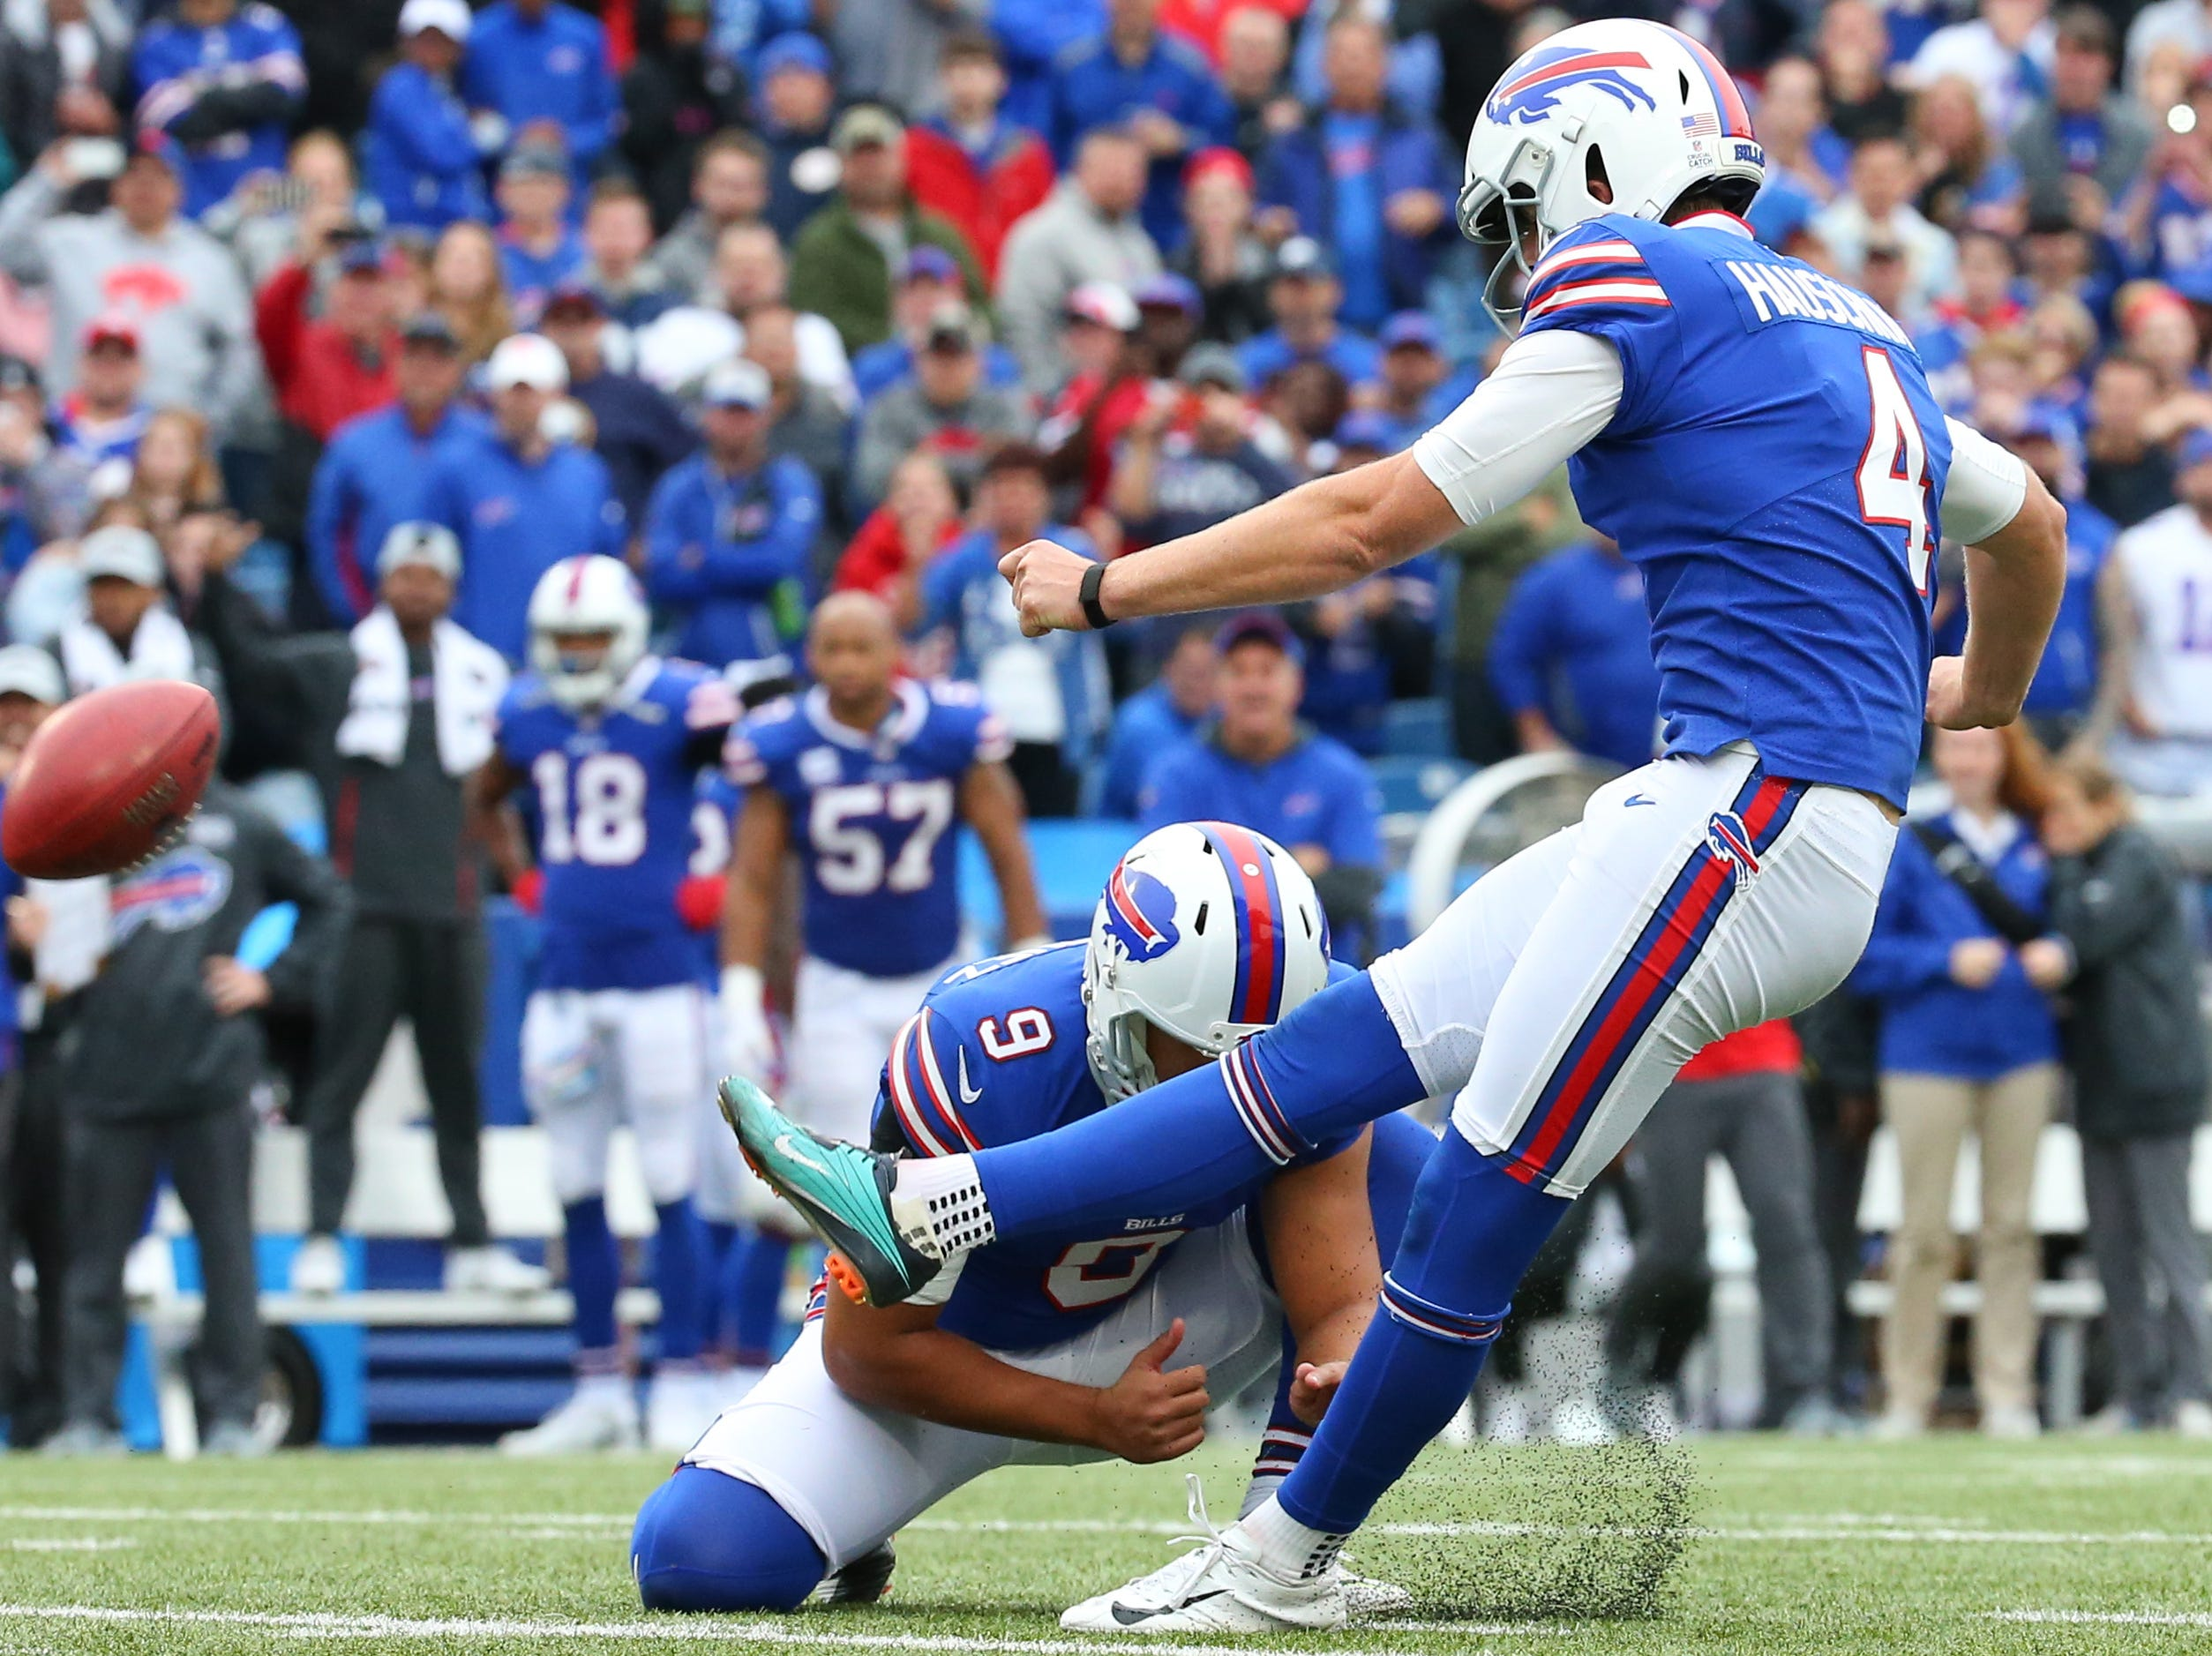 Oct 7, 2018; Orchard Park, NY, USA; Buffalo Bills kicker Stephen Hauschka (4) kicks the game winning field goal from the hold of punter Corey Bojorquez (9) against the Tennessee Titans during the fourth quarter at New Era Field.